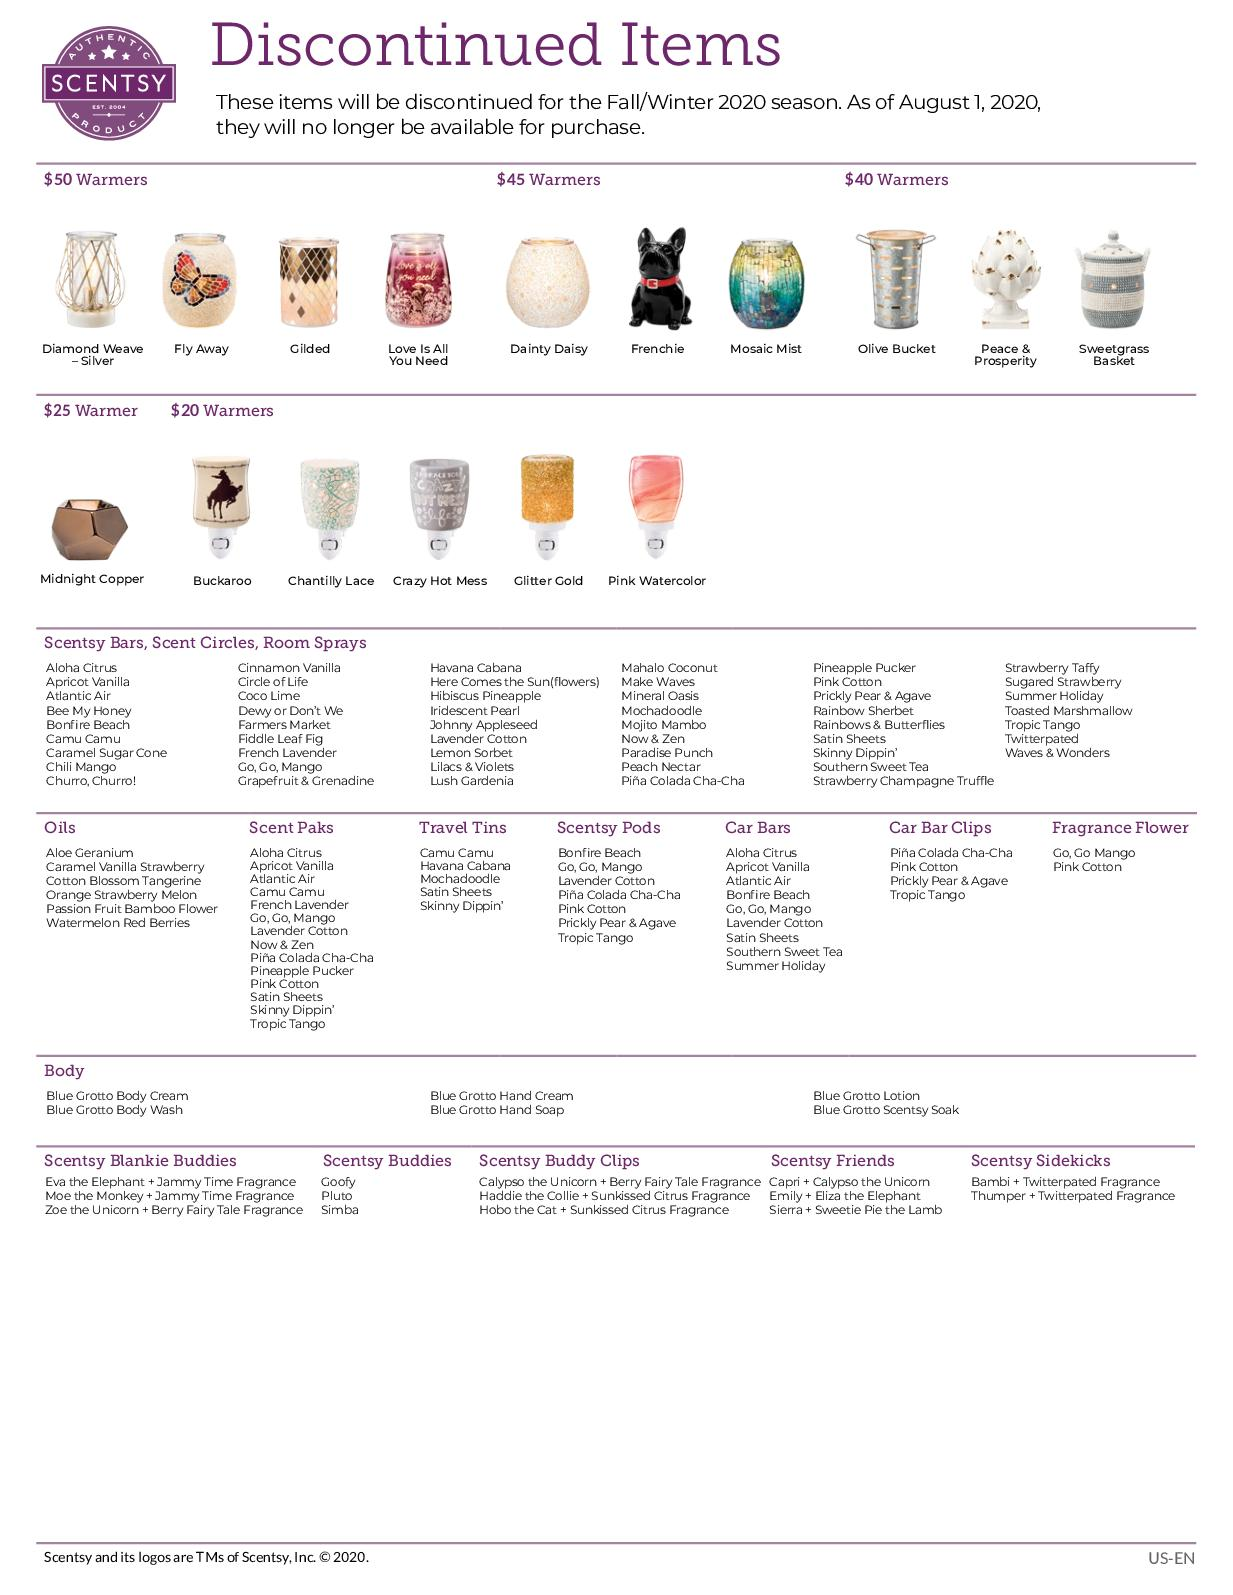 Calameo Scentsy Fall Winter 2020 Discontinued List